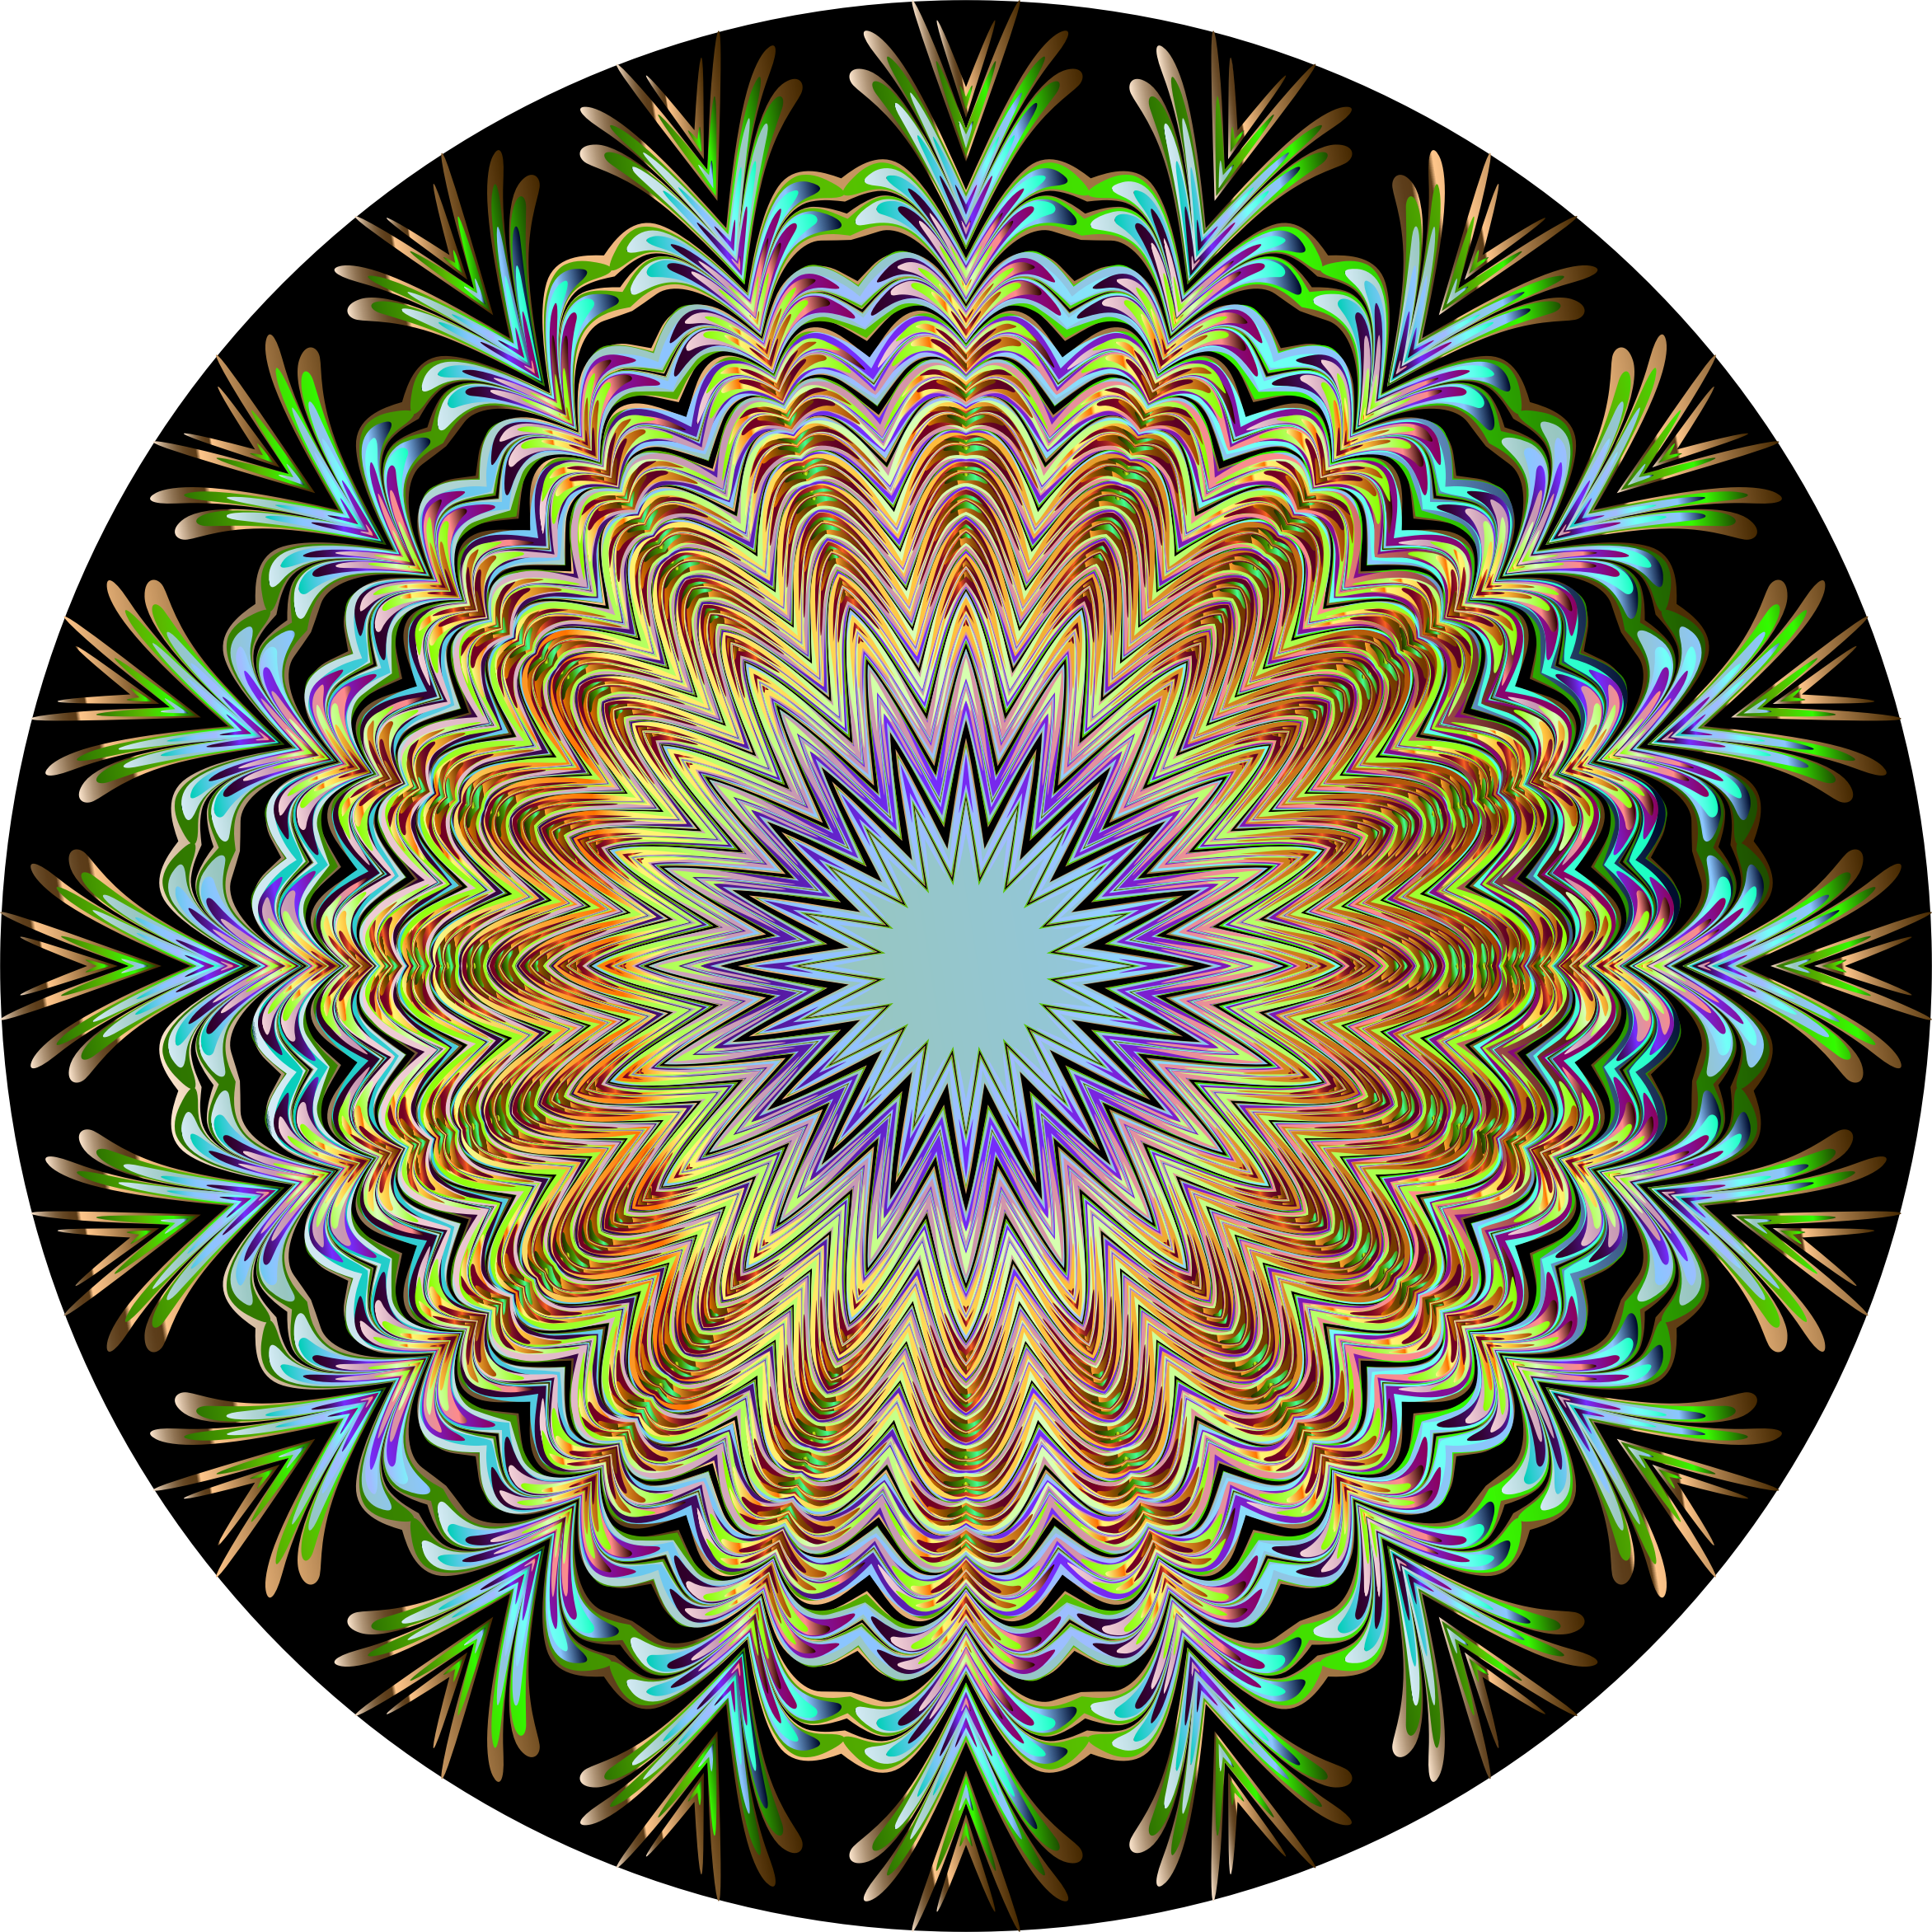 Chromatic Symmetric Mandala 3 by GDJ